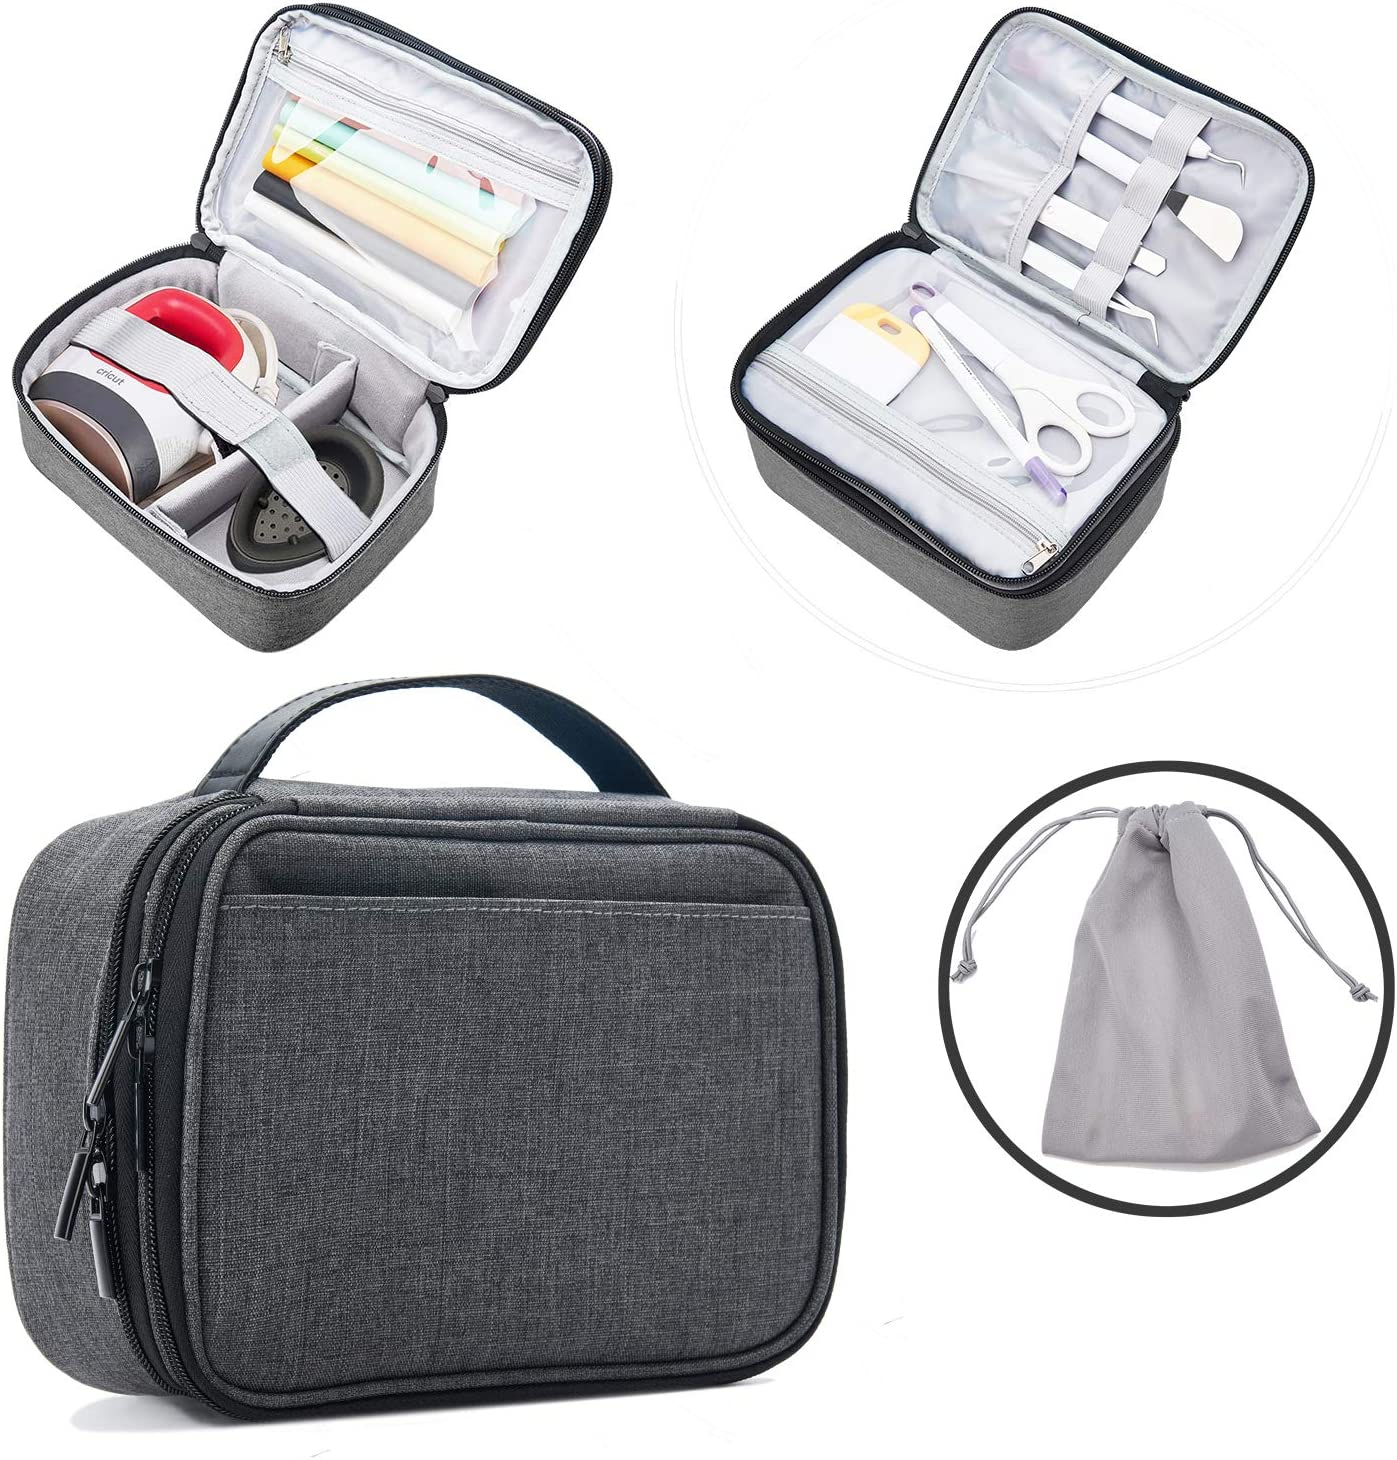 VOSDANS Carrying Case with Double Lowest price challenge Layer Popular brand Easy Mi for Cricut Press